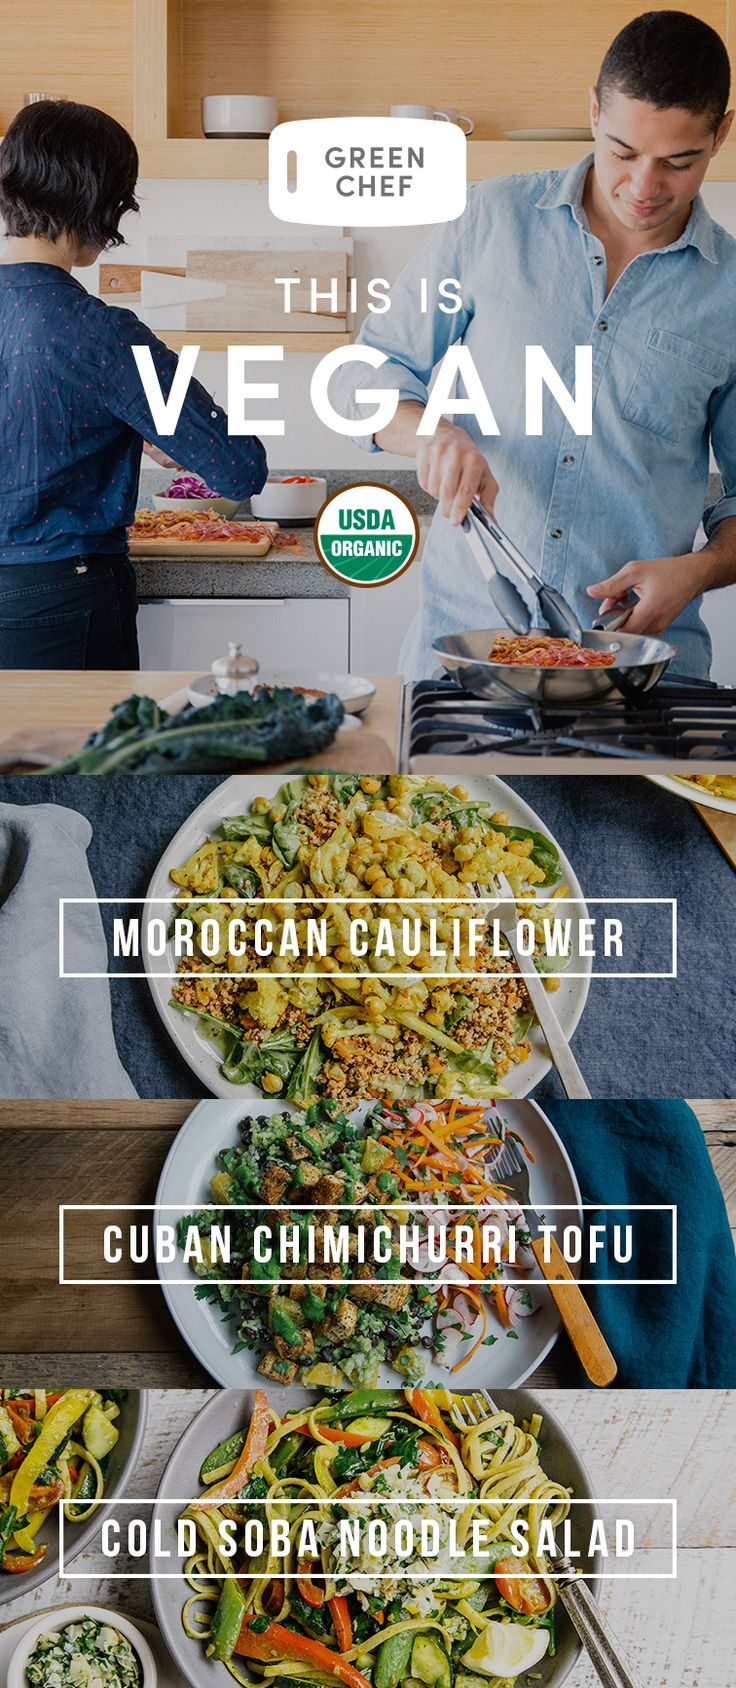 2017? More like Twenty-Seven-Green! This is the year to go vegan. Cook organic, delicious, plant-based meals crafted by Green Chef. We deliver fresh ingredients and easy recipes right to you. Sign up today for $50 OFF